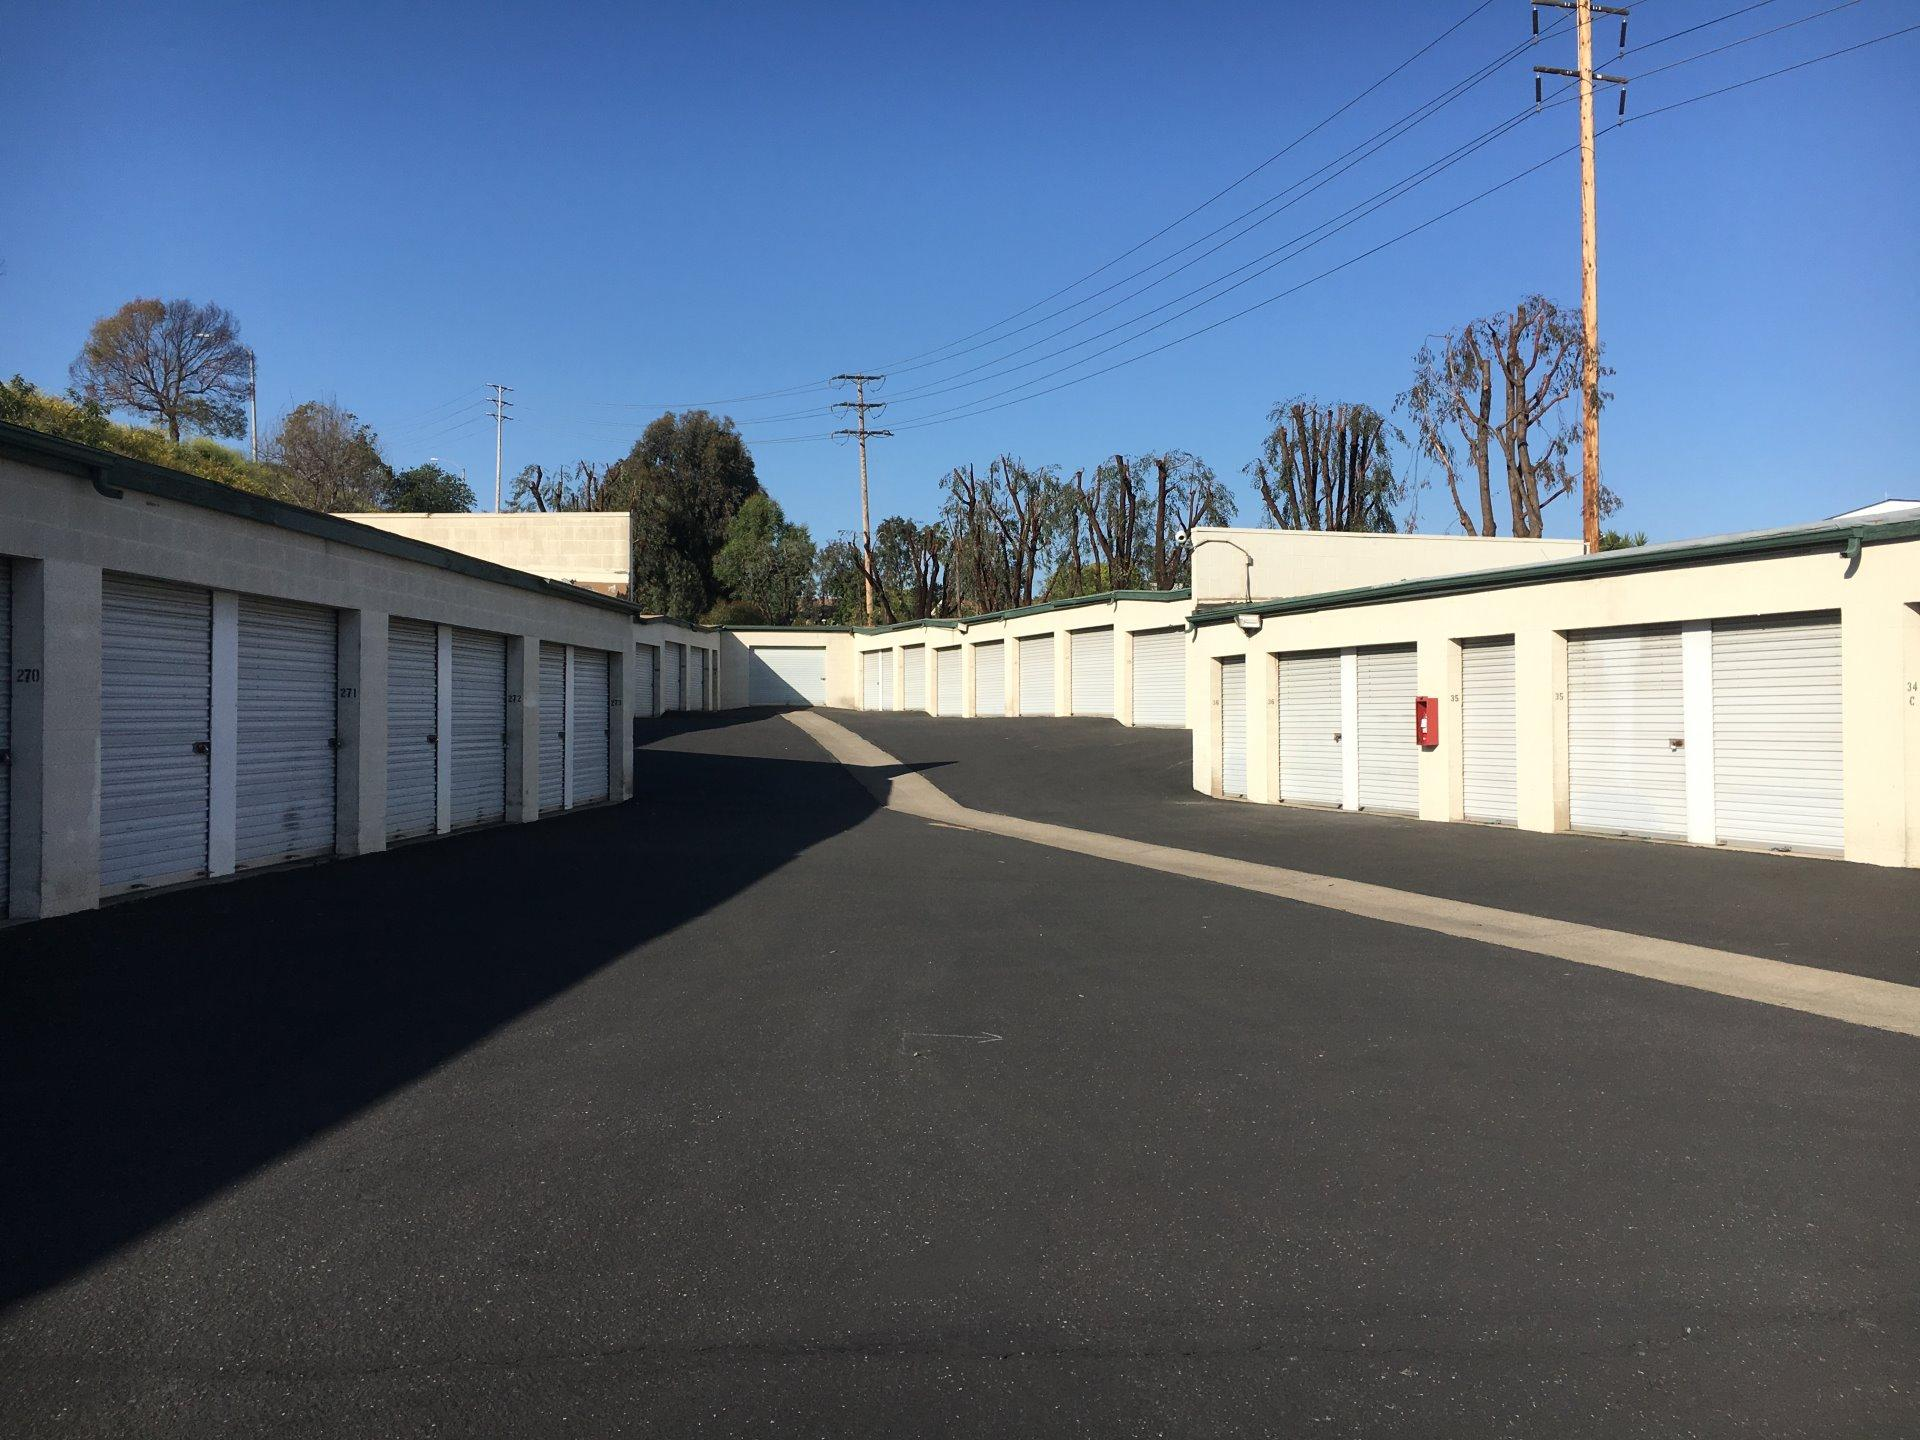 War Security also 529 In Irvine besides Public storage also Storage Centers additionally The 10 Most Beautiful Towns In California. on car storage facilities in los angeles